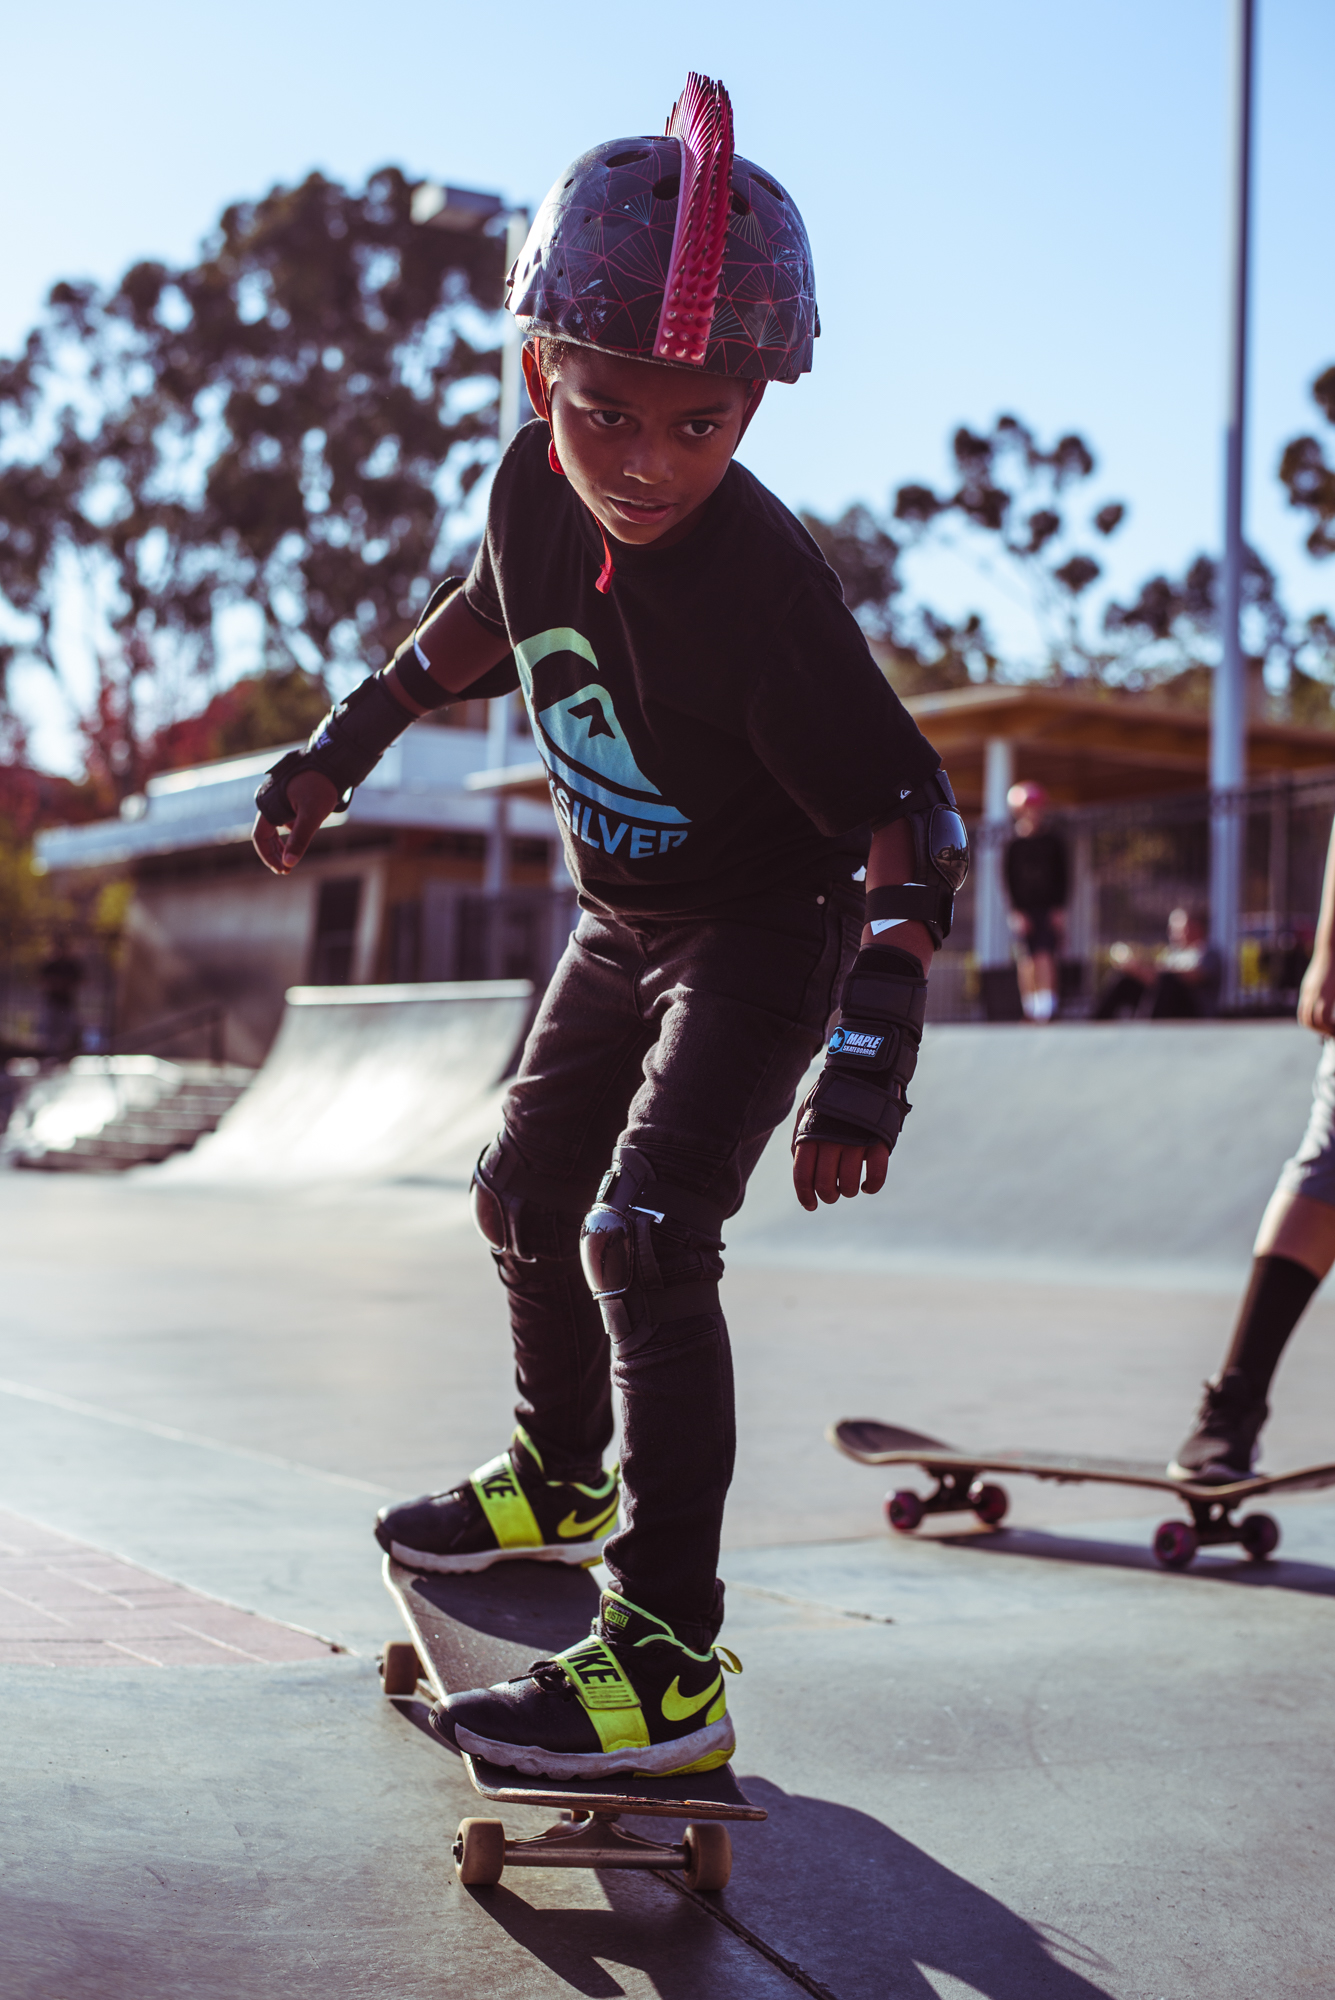 Skateboard Birthday Party-9.jpg